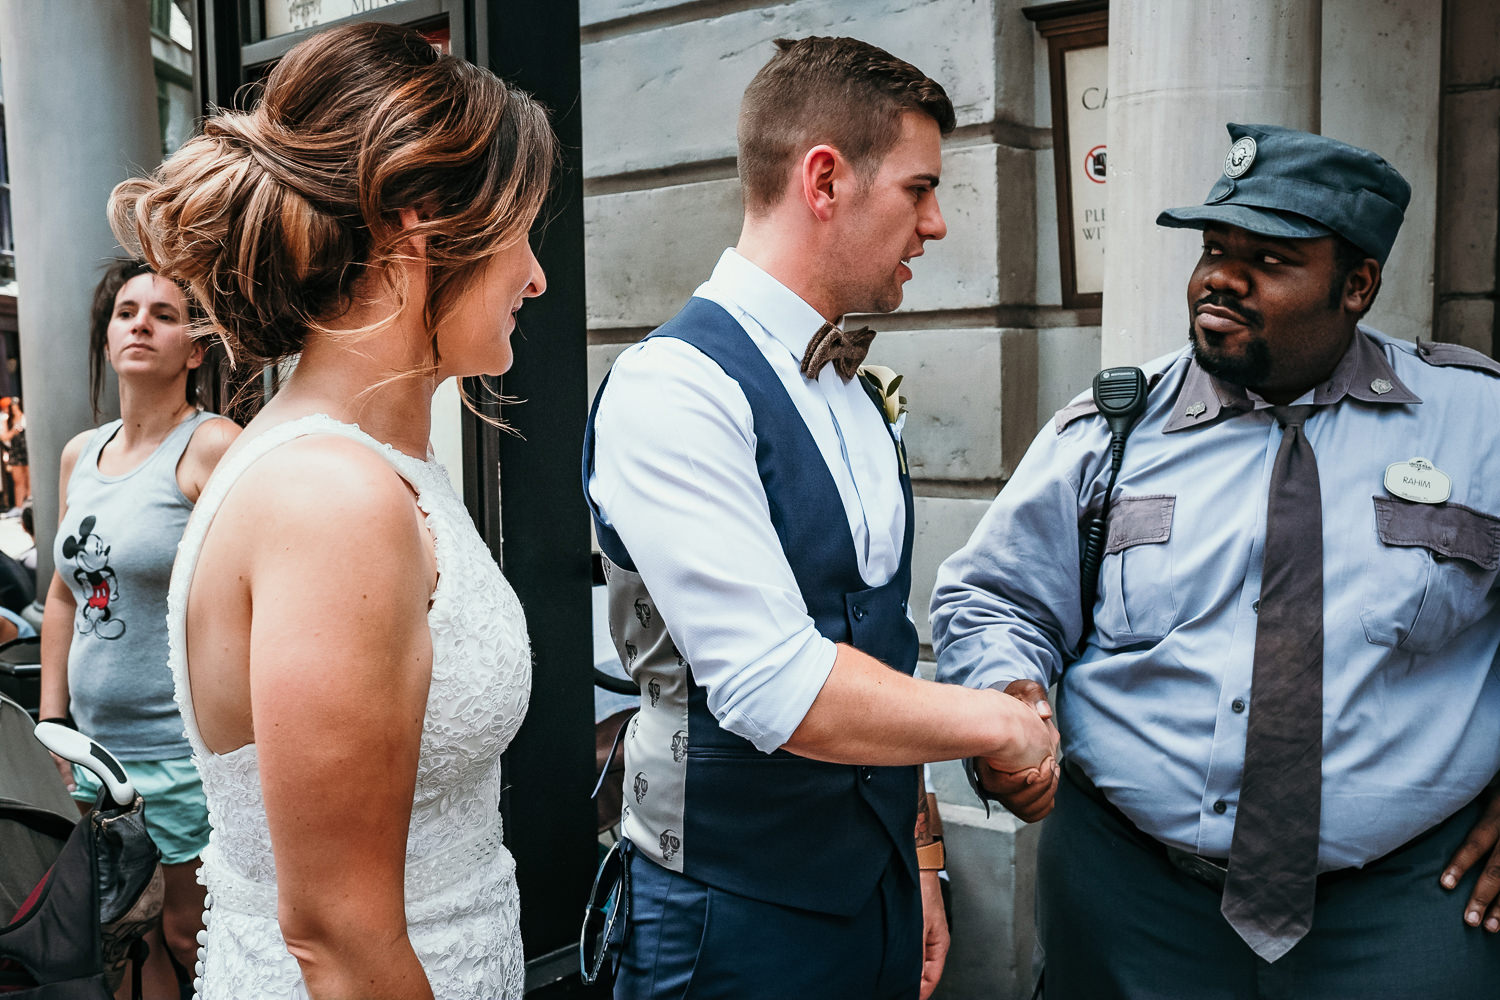 groom shaking hands with gringotts security